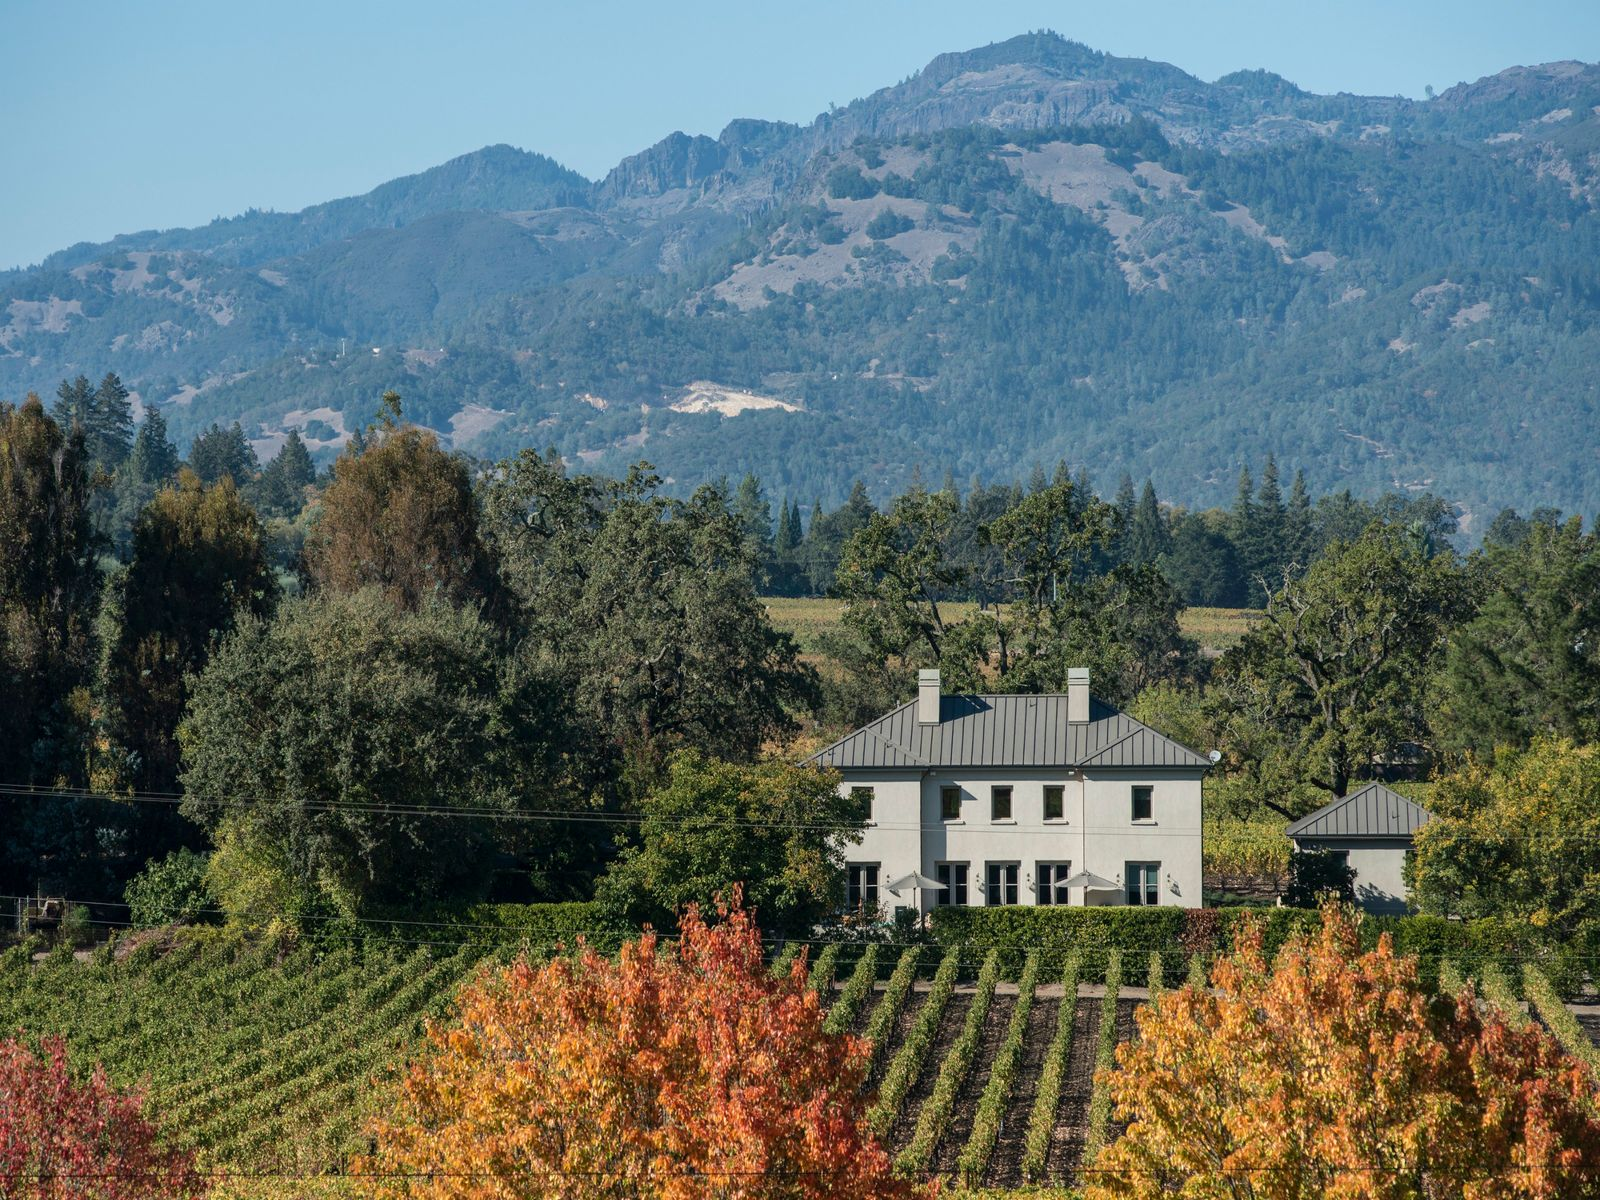 Modern Country Villa, St. Helena CA Single Family Home - Sonoma - Napa Real Estate